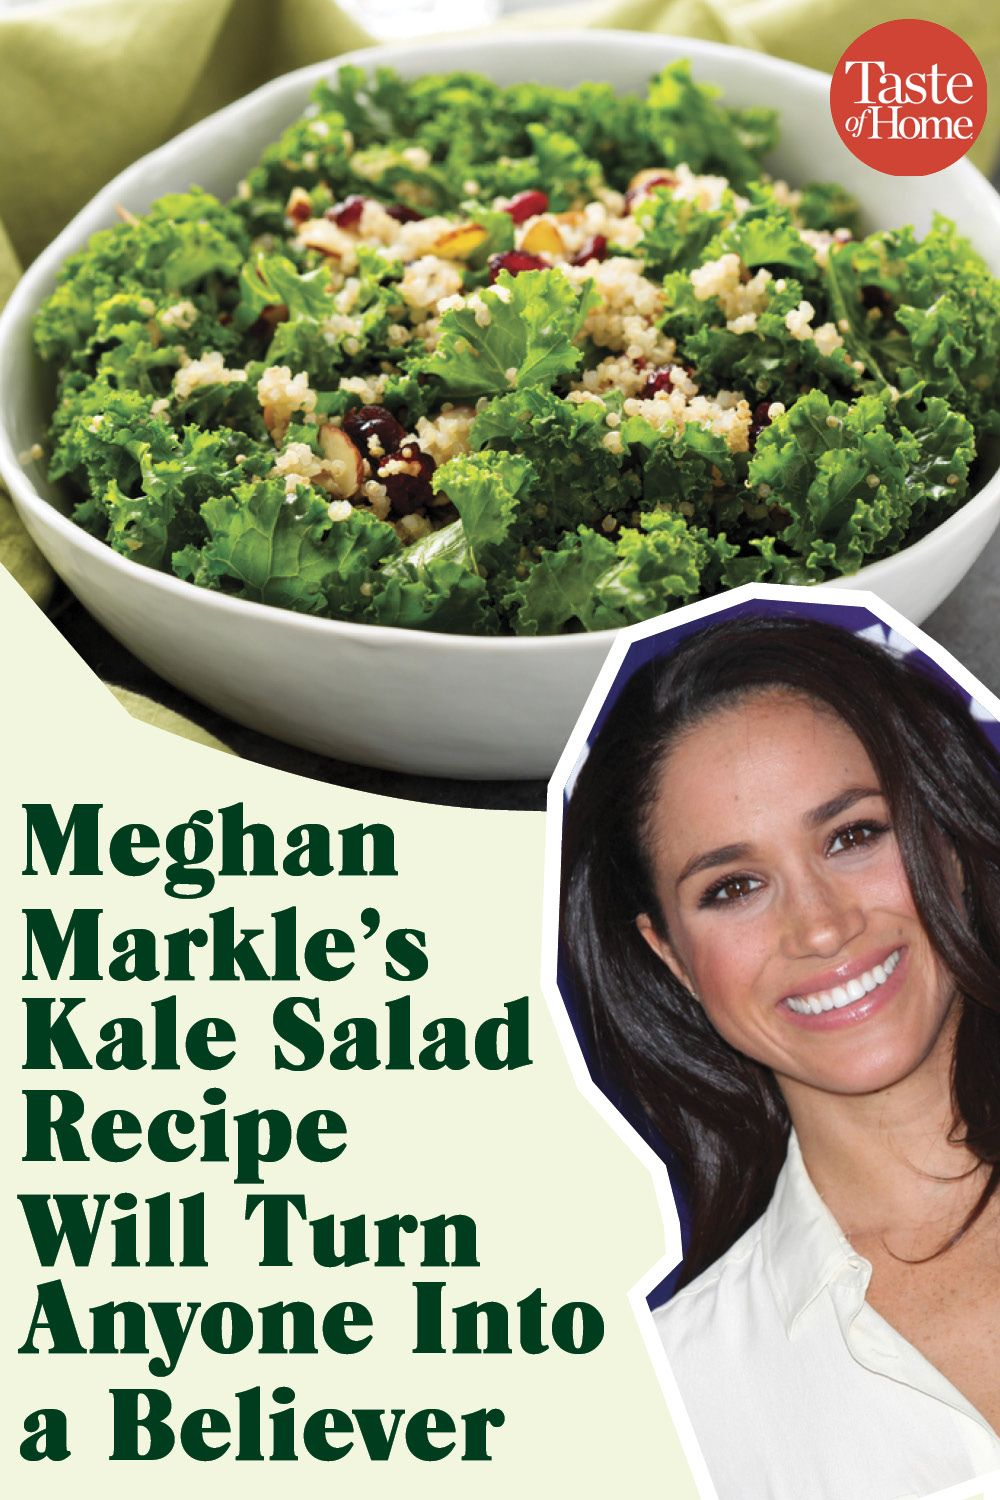 Meghan Markle's Kale Salad Recipe Will Turn Anyone